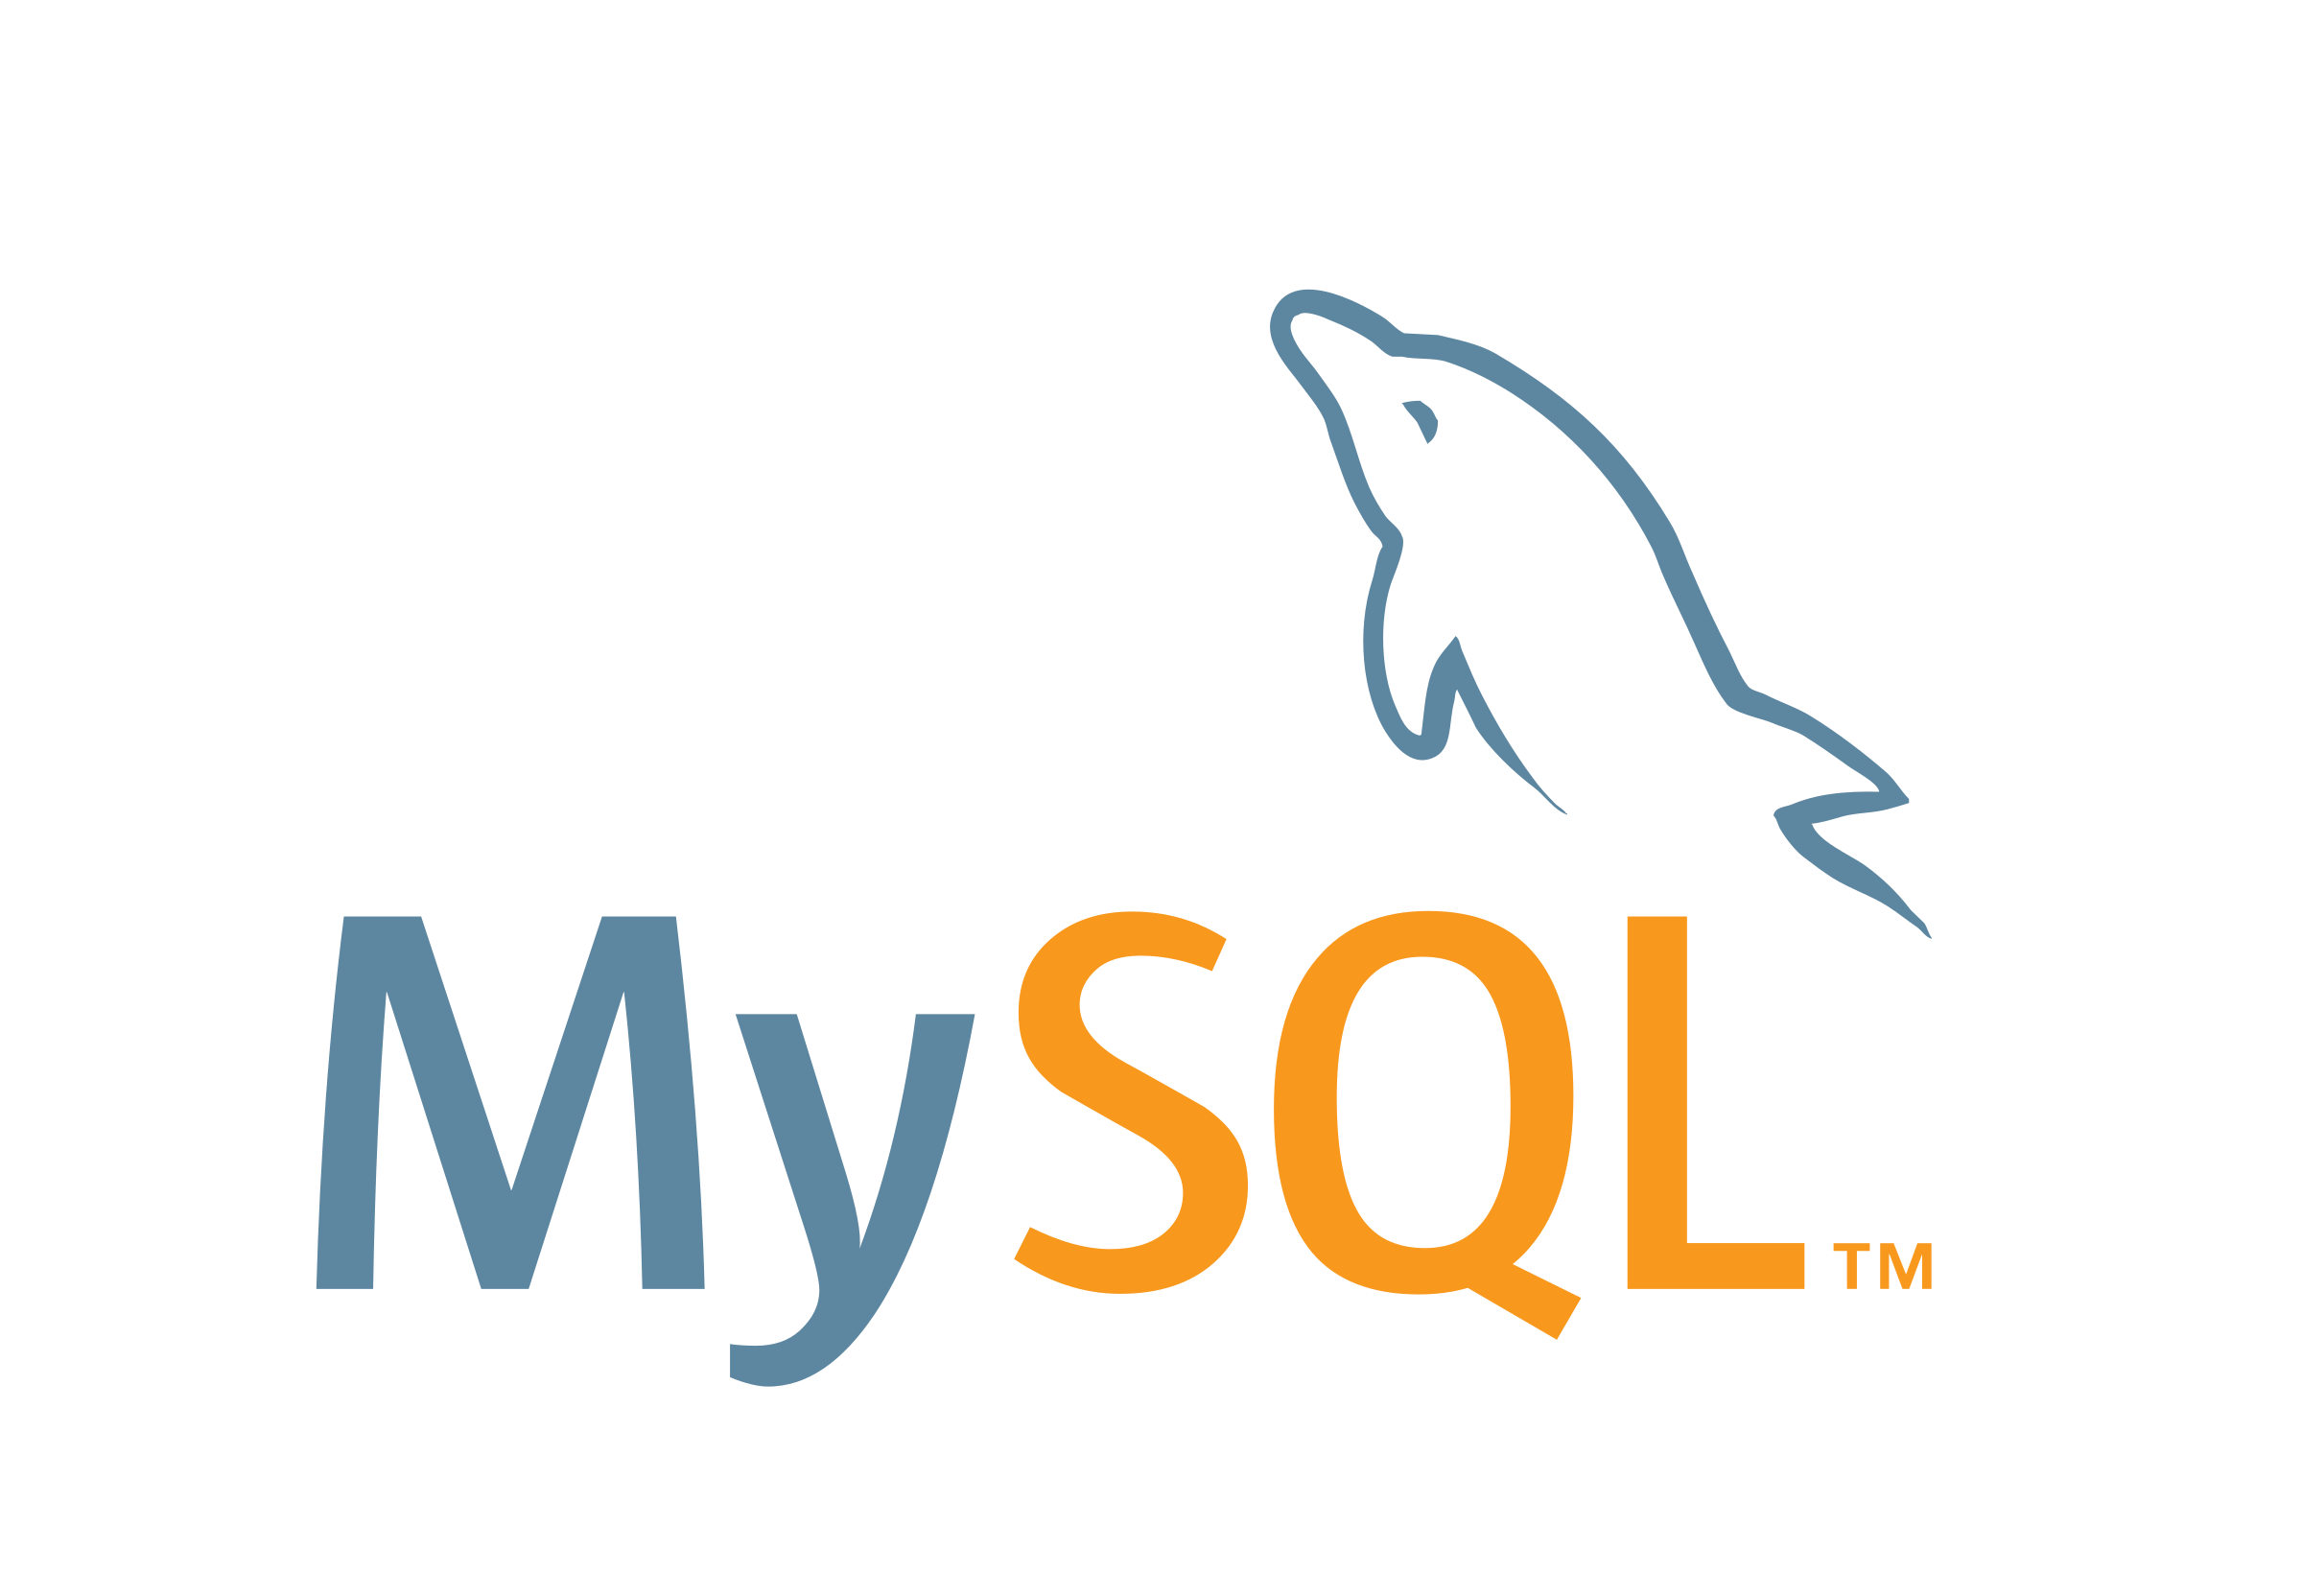 my sql data science